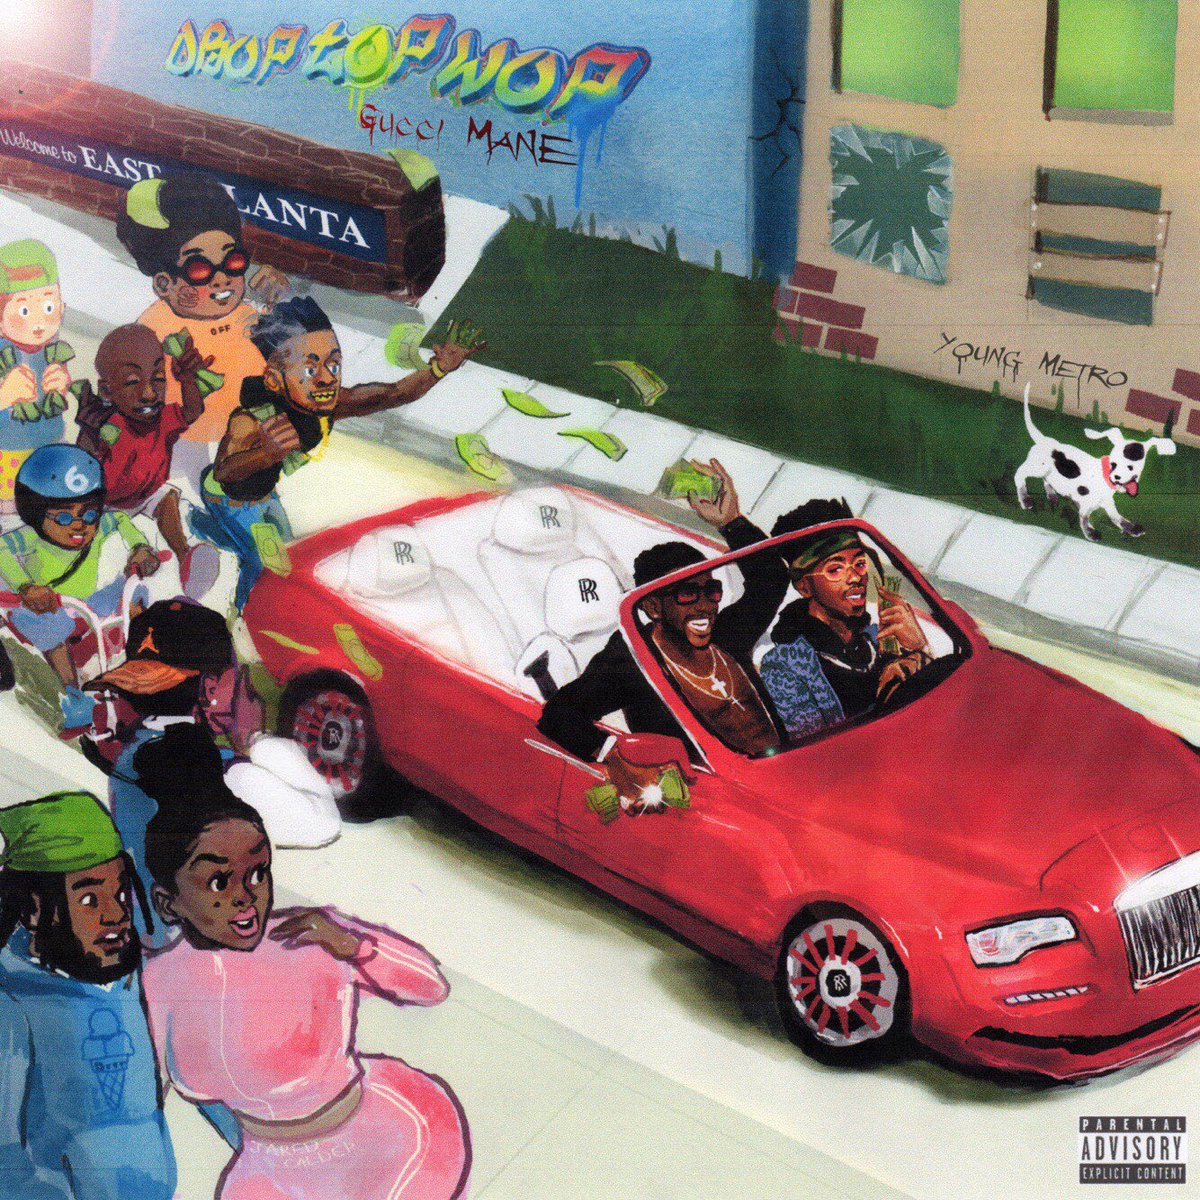 Droptopwop By Gucci Mane – Review – Diamond In The Groove